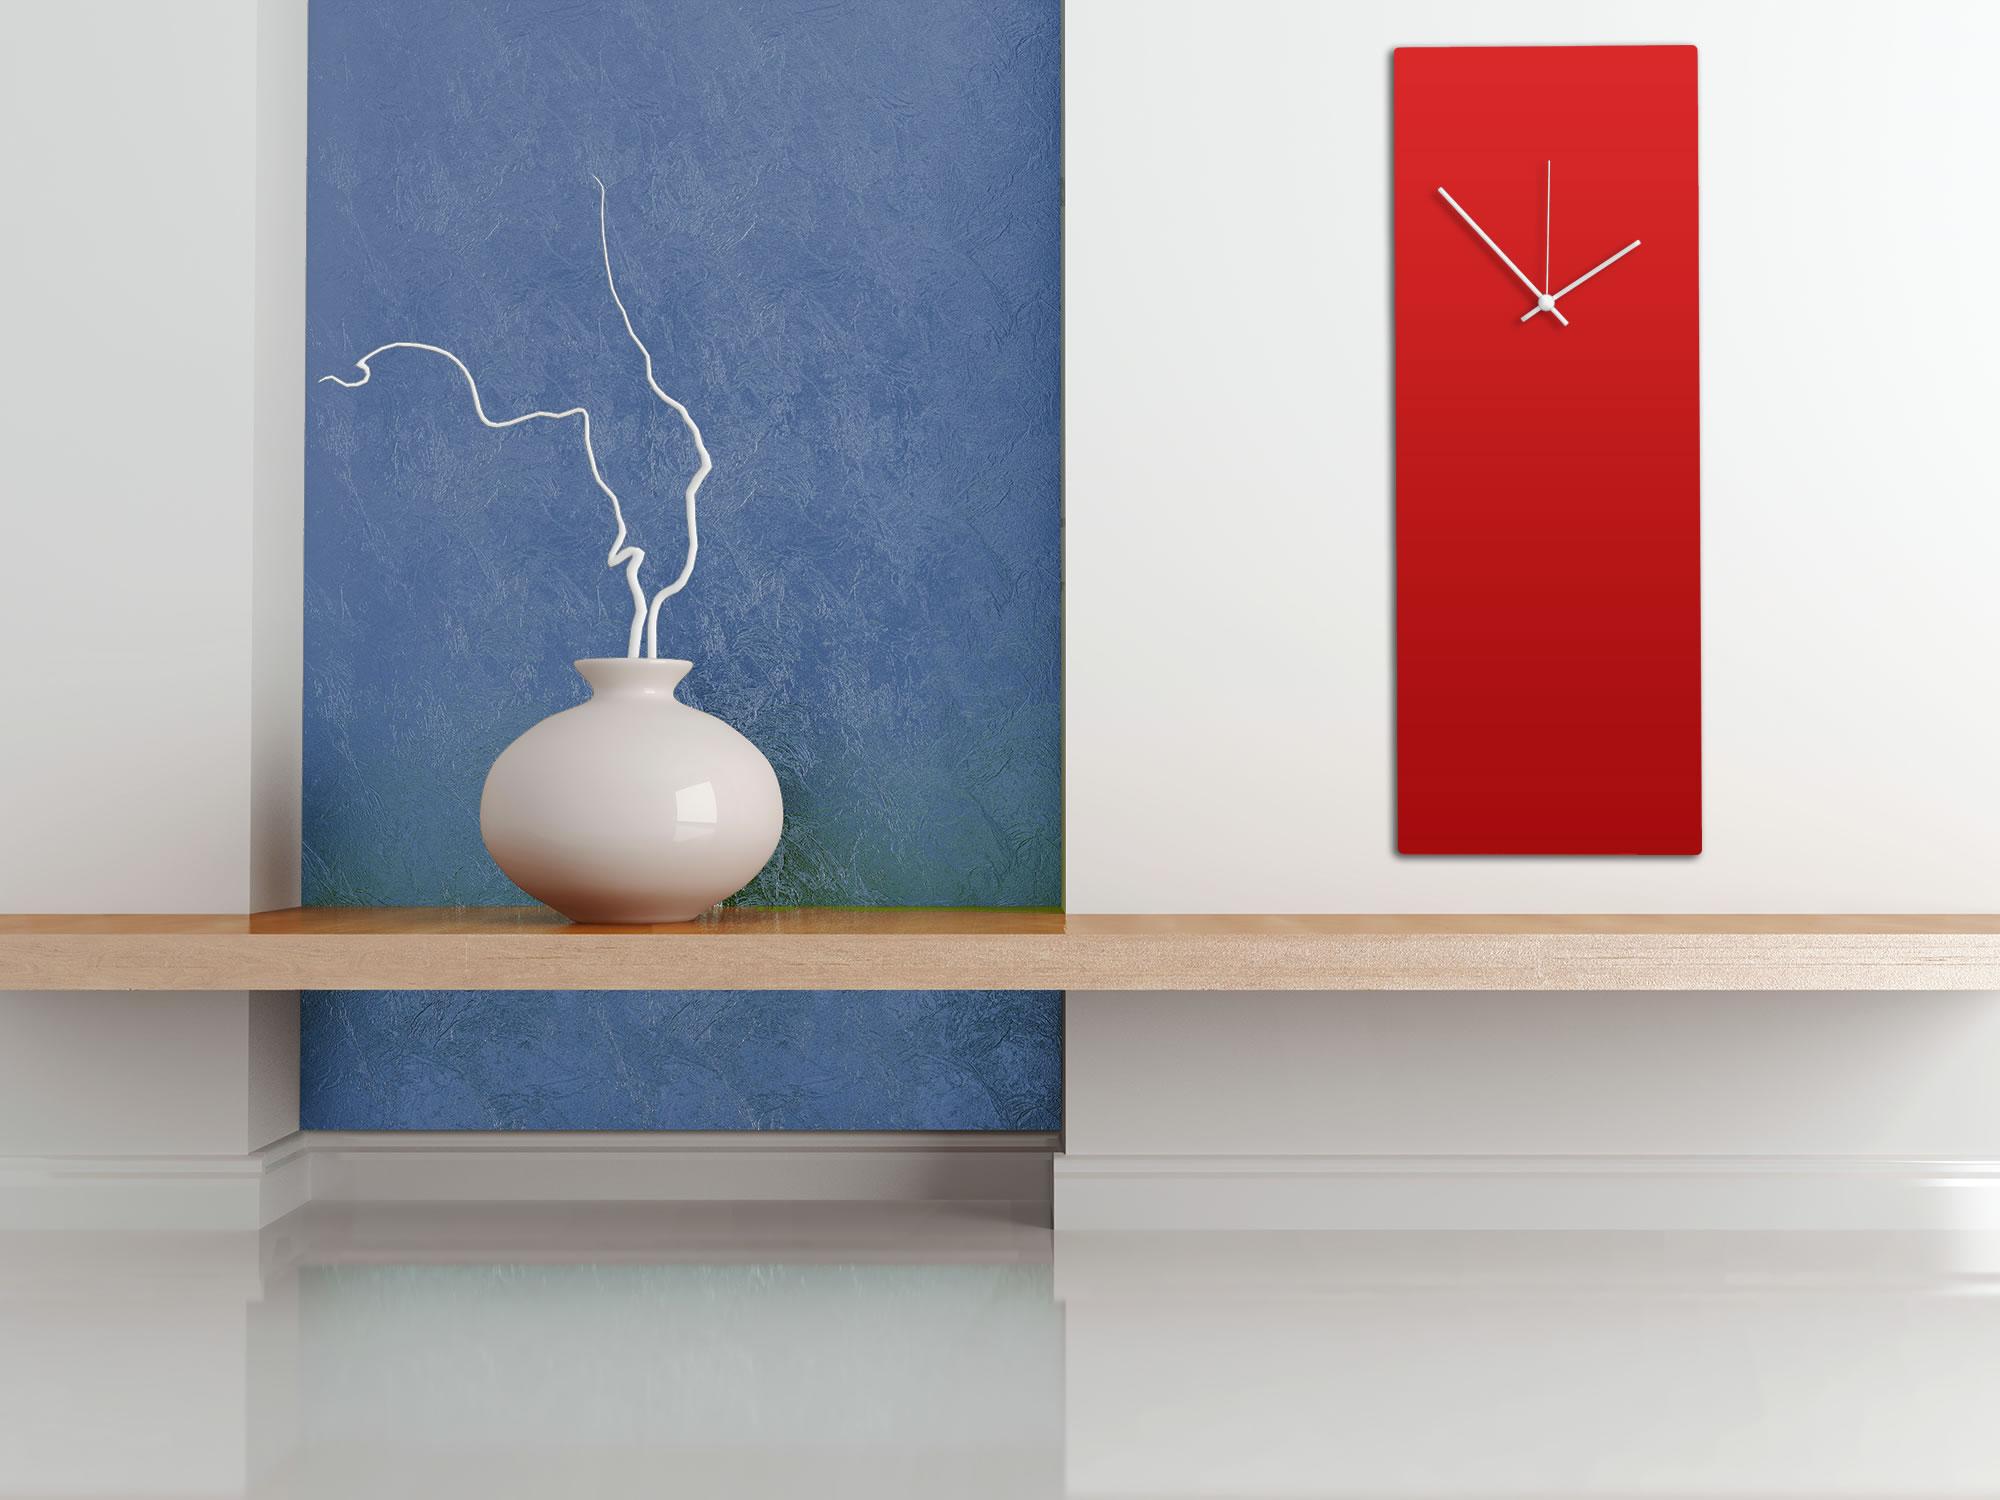 Redout White Clock - Large - Minimalist Red Wall Clock - Lifestyle Image